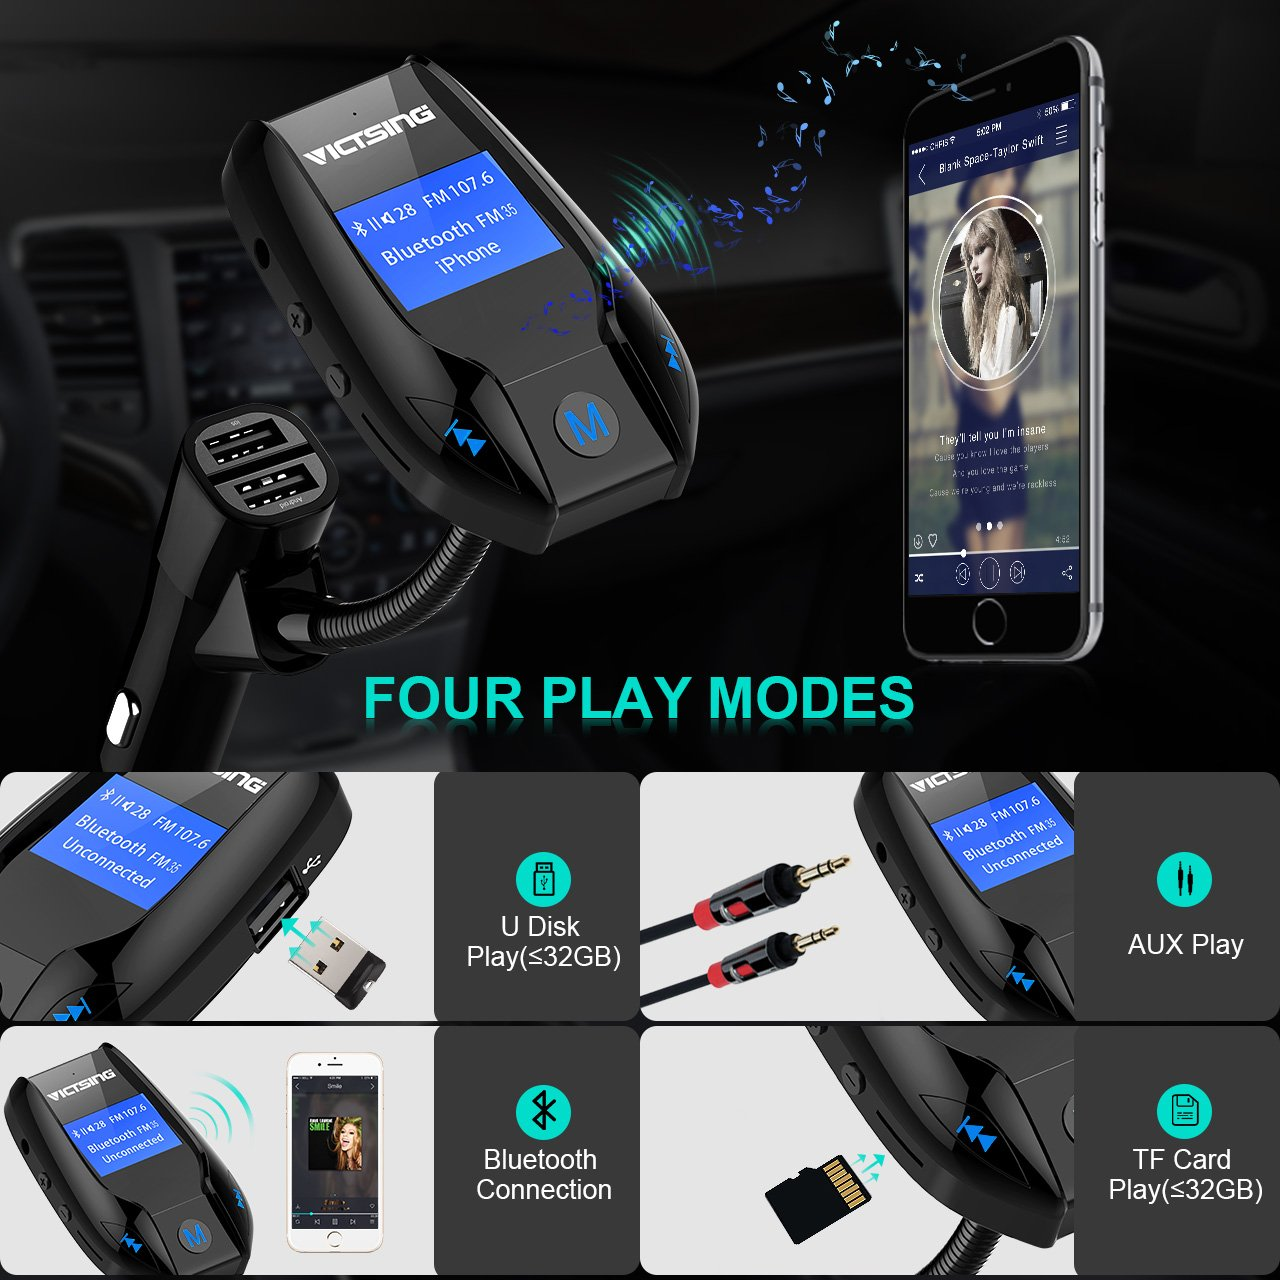 Amazon.com: VicTsing FM35 Bluetooth FM Transmitter/w 3 USB Ports, Wireless in-Car FM Transmitter Radio Adapter Car Speaker,Car Kit, MP3 Player Supports Aux ...